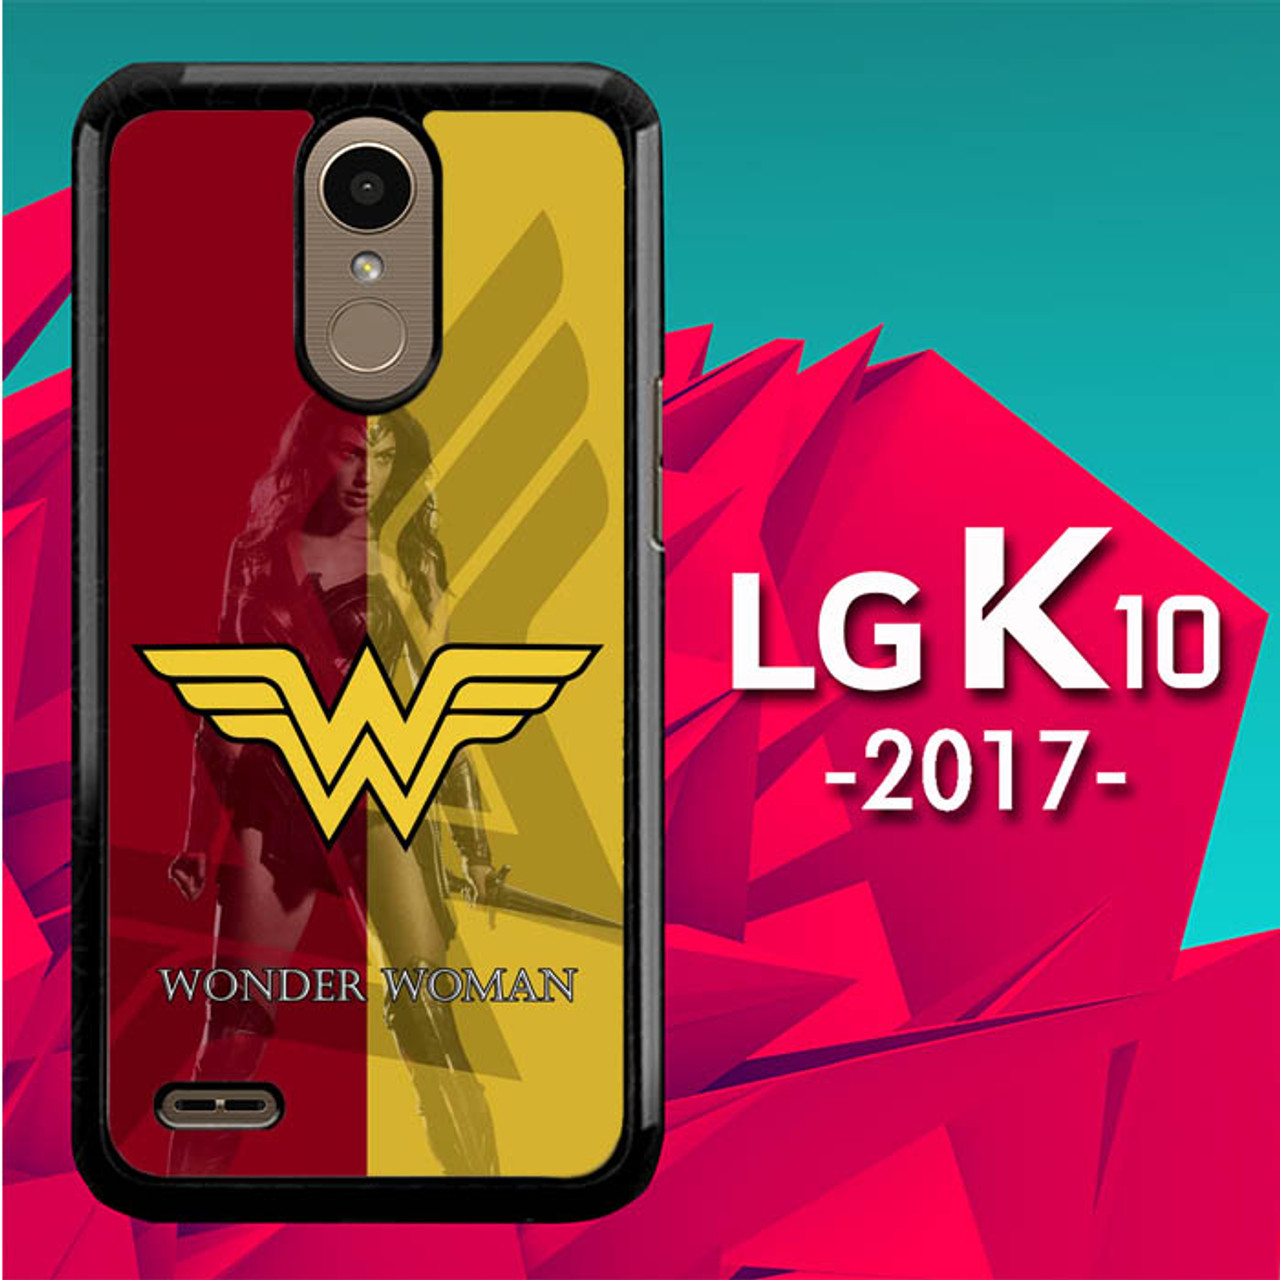 Wonder Woman Wallpaper L3219 Lg E1750 K10 2017 Lg K20 Plus Lg